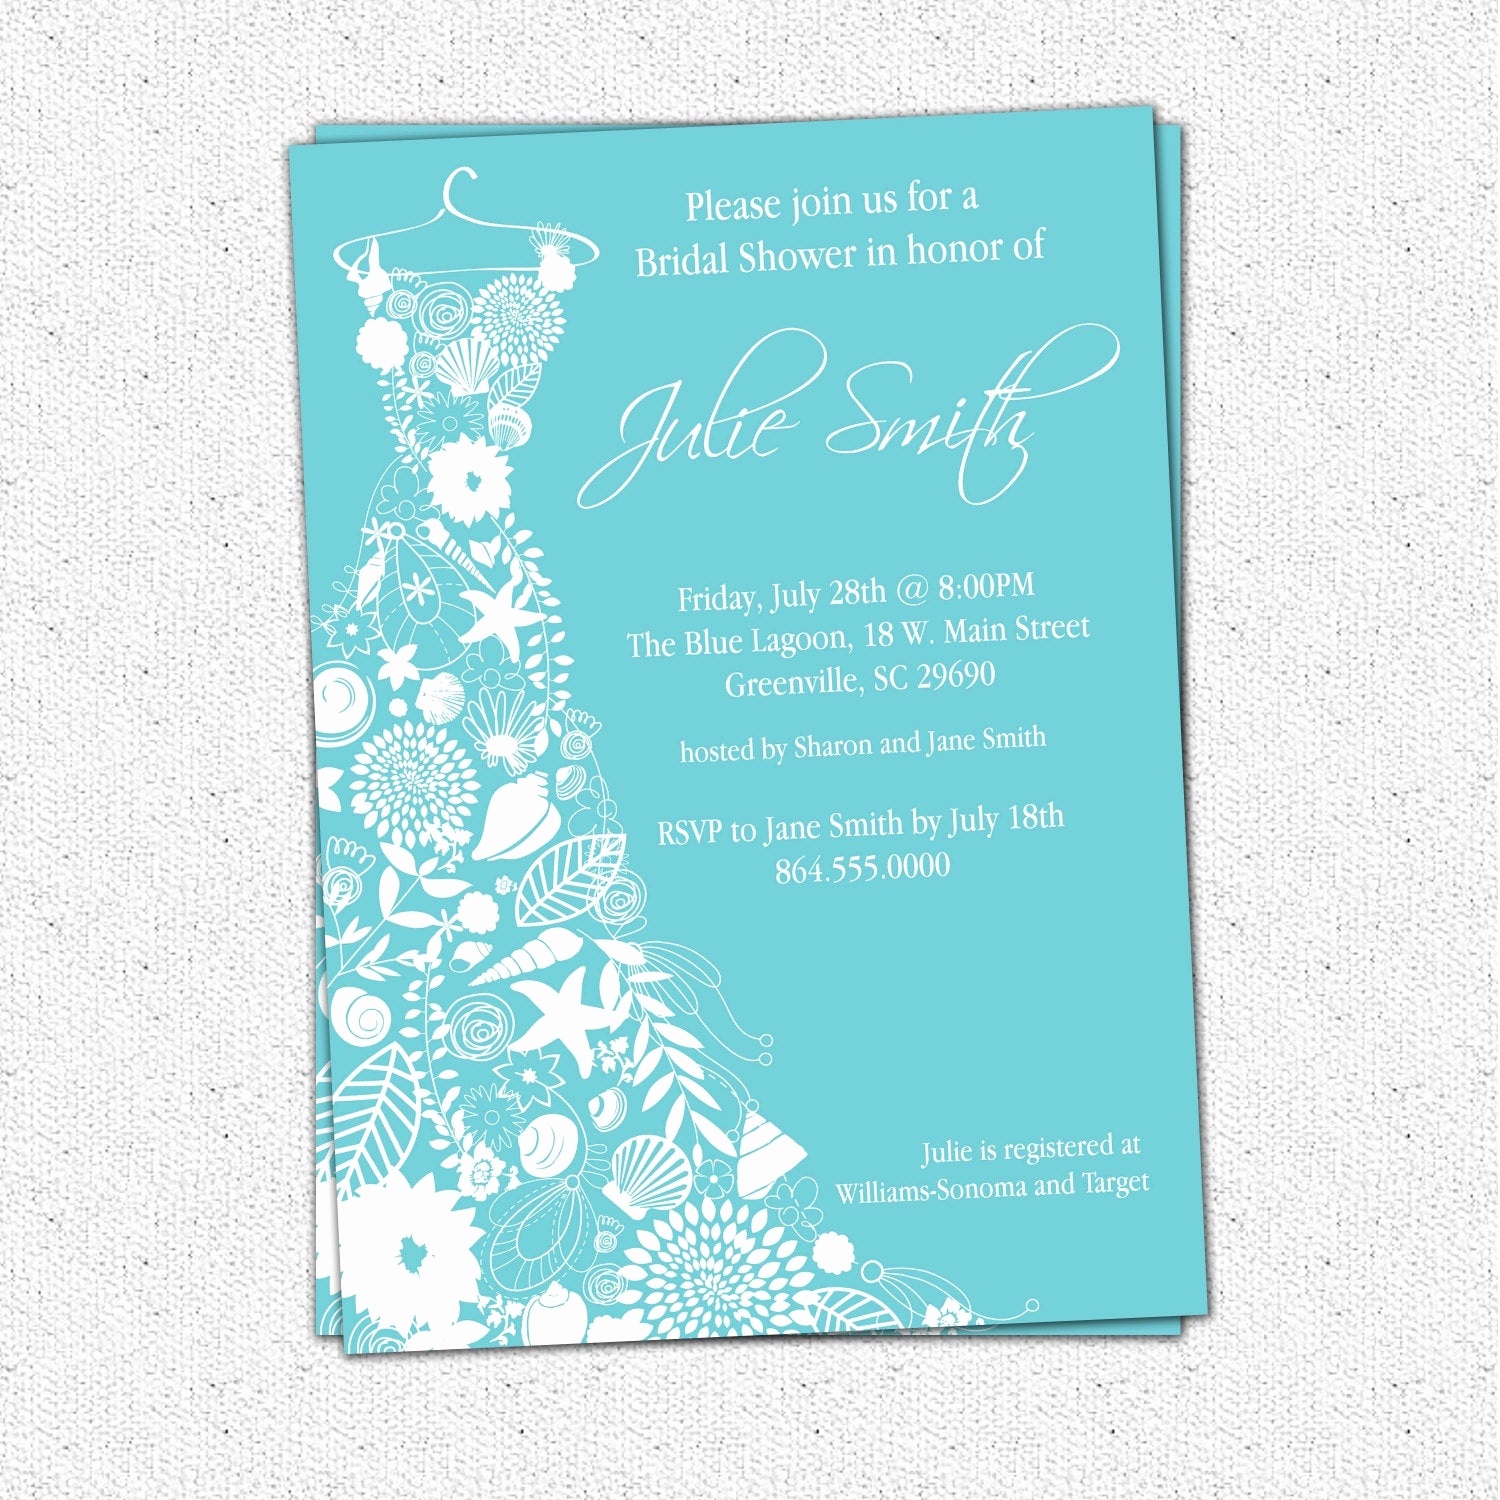 Printable Bridal Shower Invitations Awesome Printable Bridal Shower Invitation Floral Seashell Dress